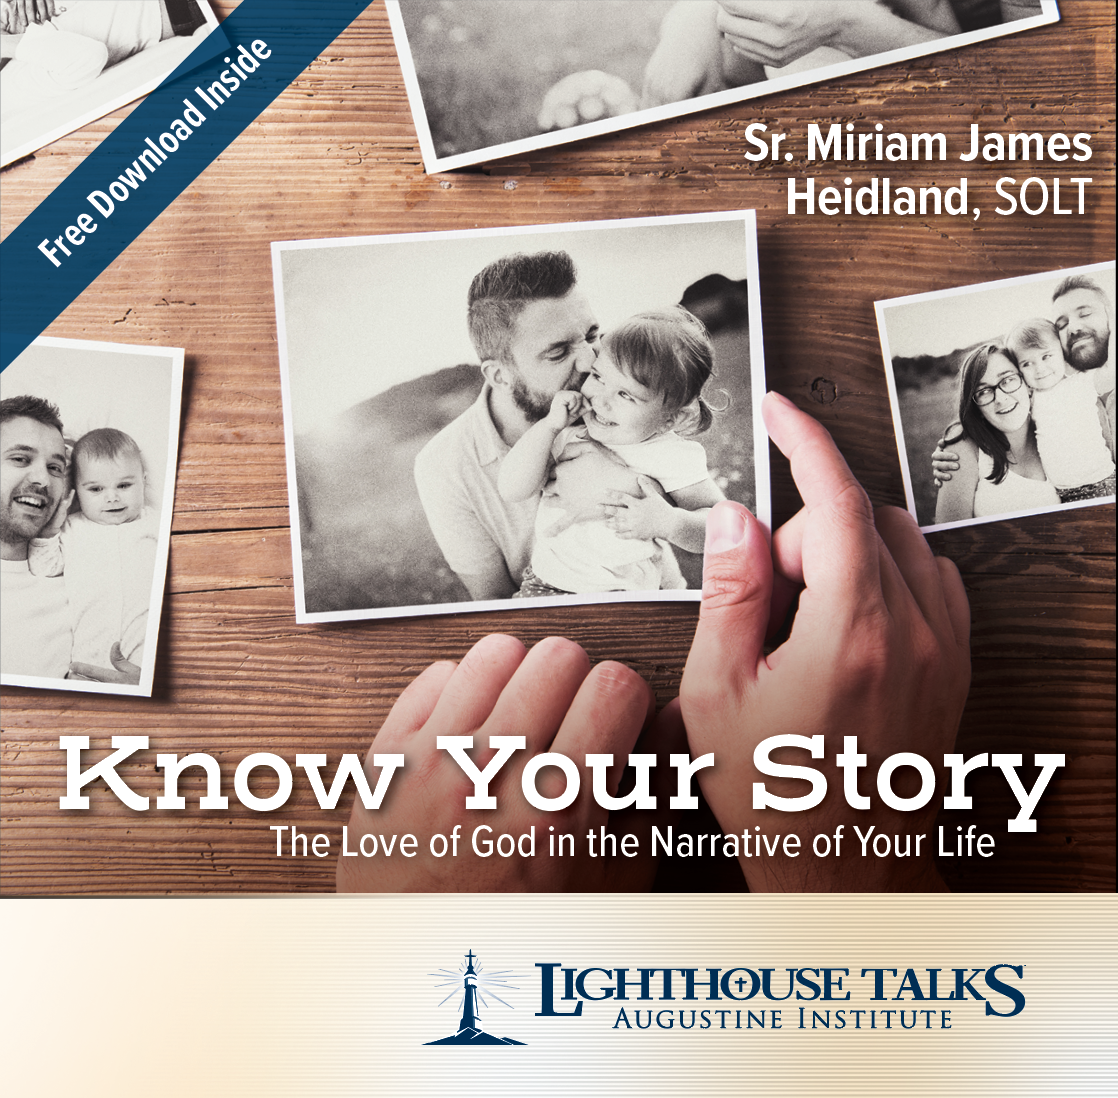 Know Your Story: The Love of God in the Narrative of Your Life